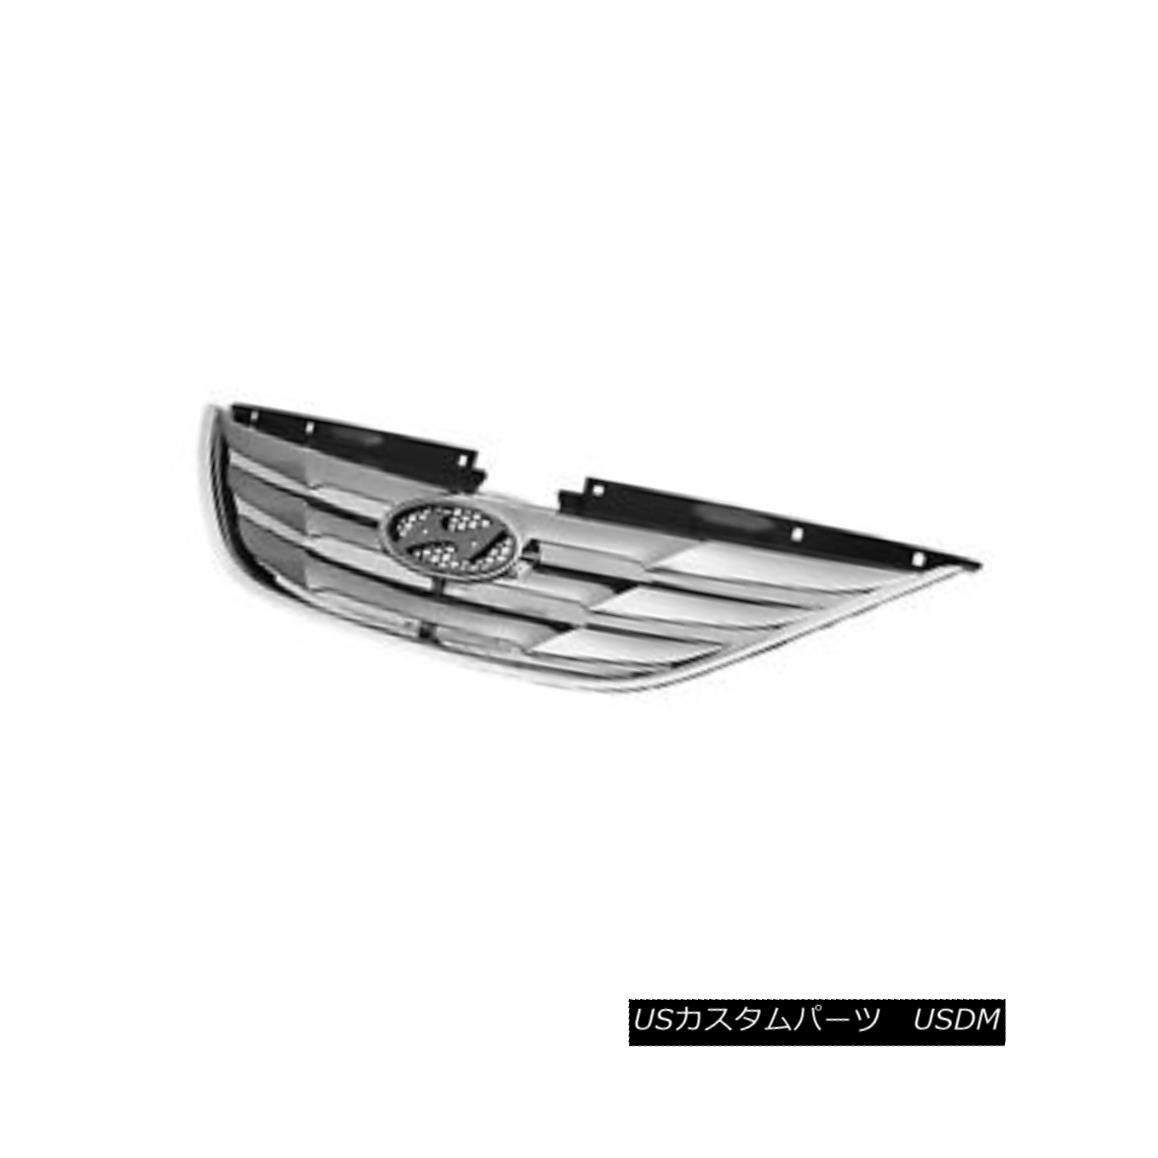 グリル Replacement Grille for 2011 2012 2013 Hyundai Sonata SE Limited Models Value 2011年2012年交換用グリル2013 Hyundai Sonata SE Limitedモデル値